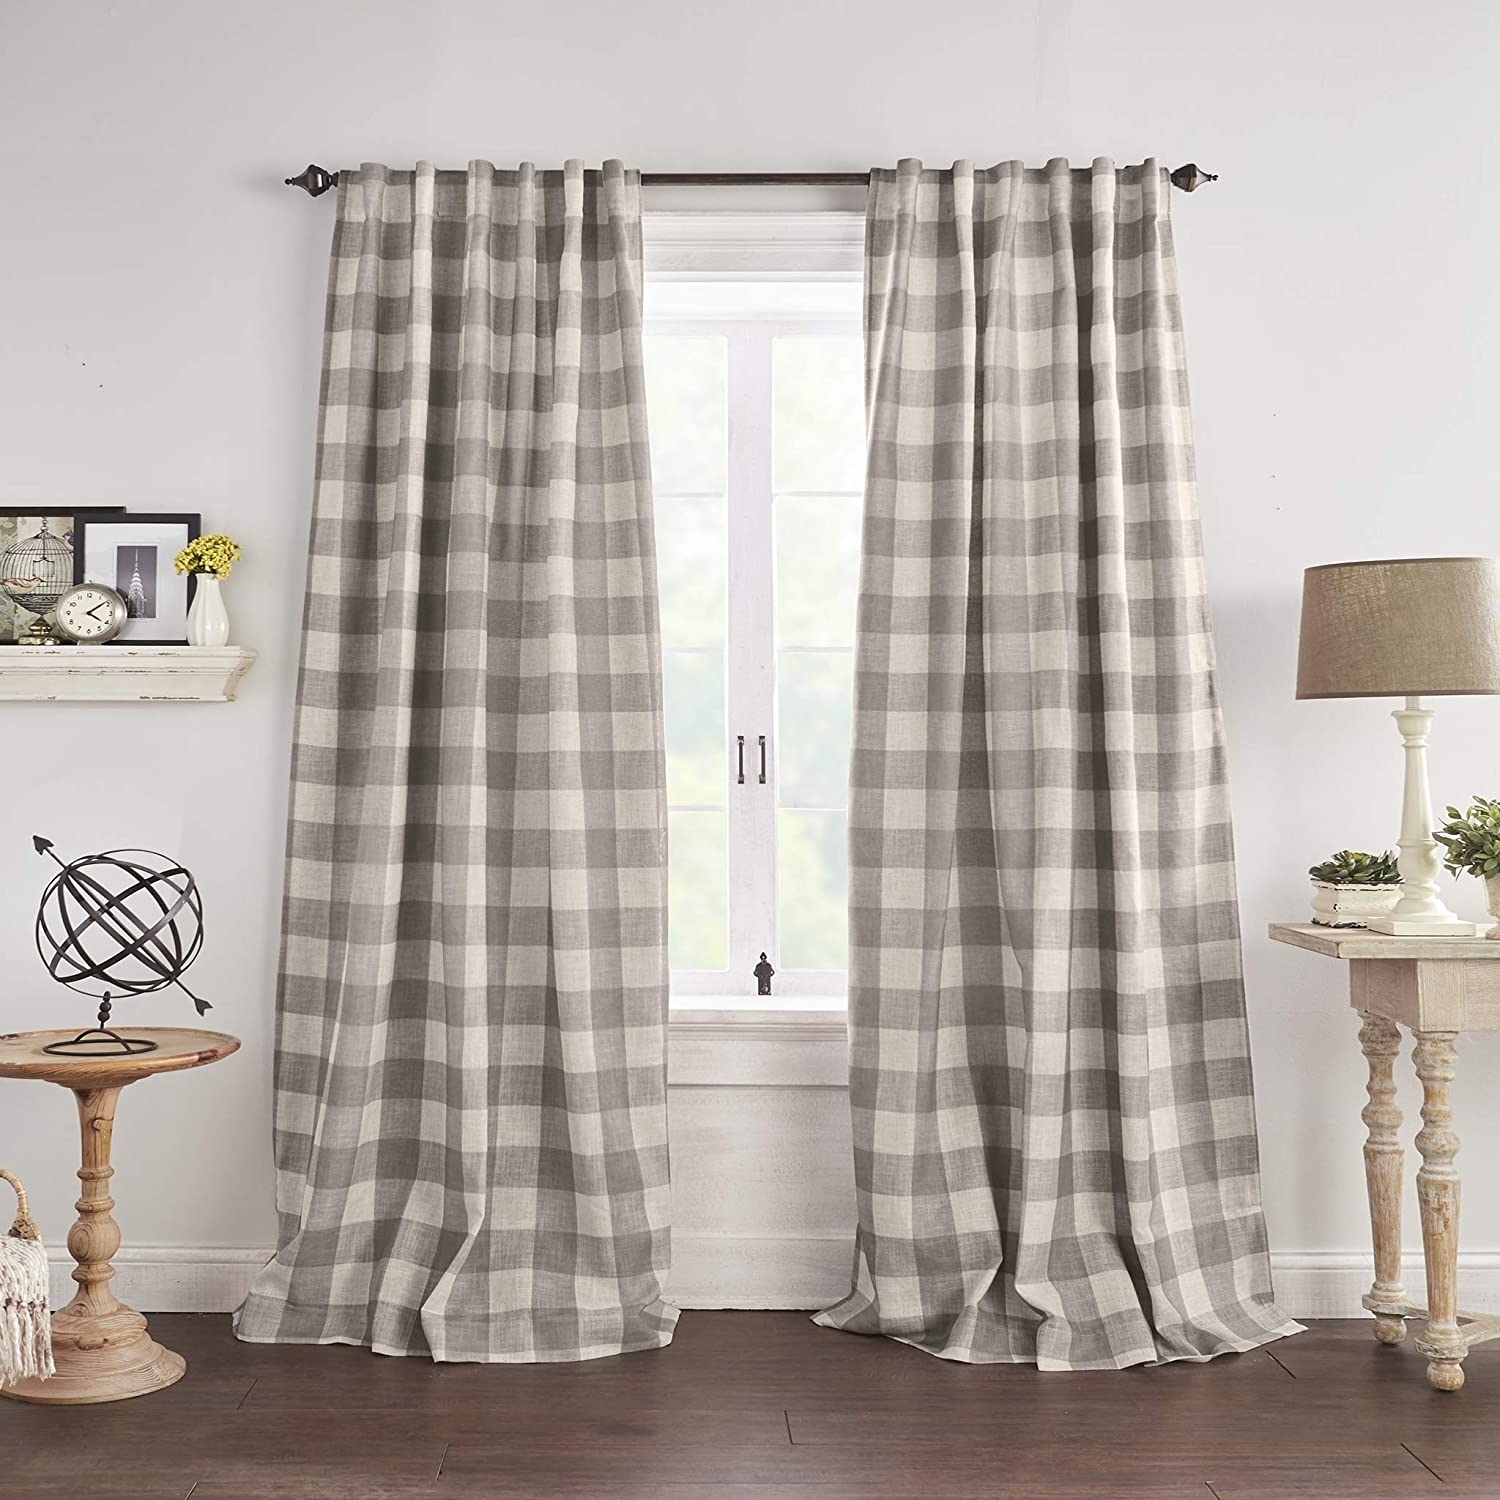 "Elrene Home Fashions Grainger Buffalo Check Blackout Window Curtain Panel, 52"" x 84"" (1, Gray"